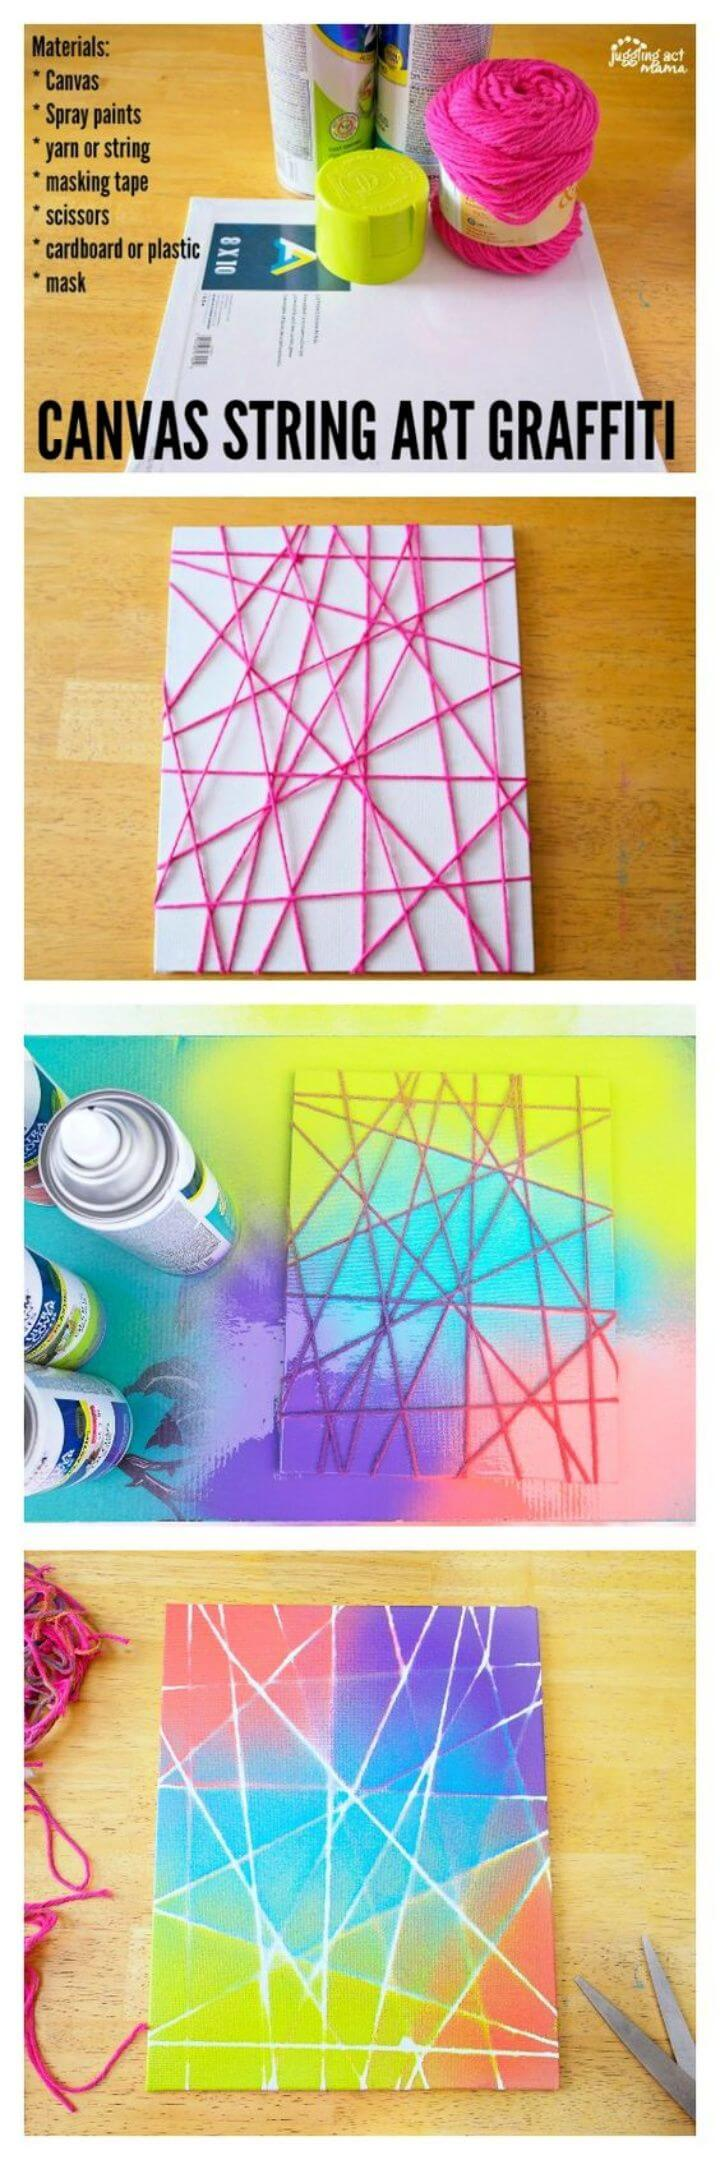 DIY Summer Canvas String Art Graffiti